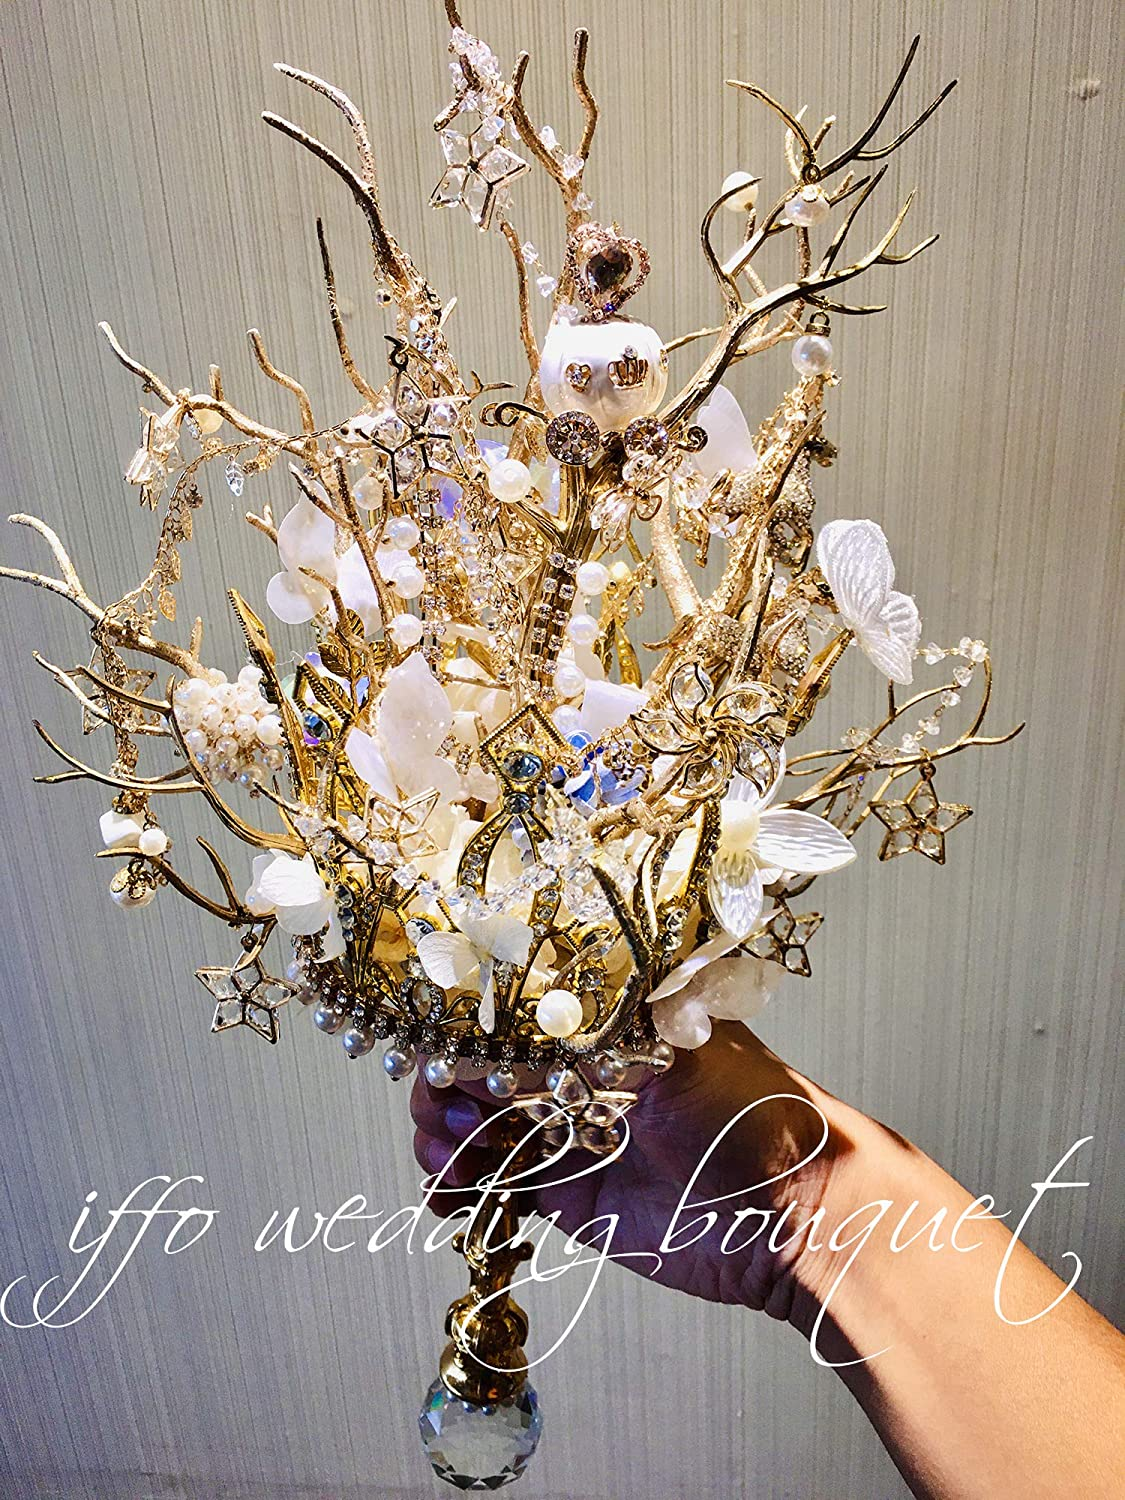 Bride wedding Very popular 2021 autumn and winter new personalized bouquet decoration flow party